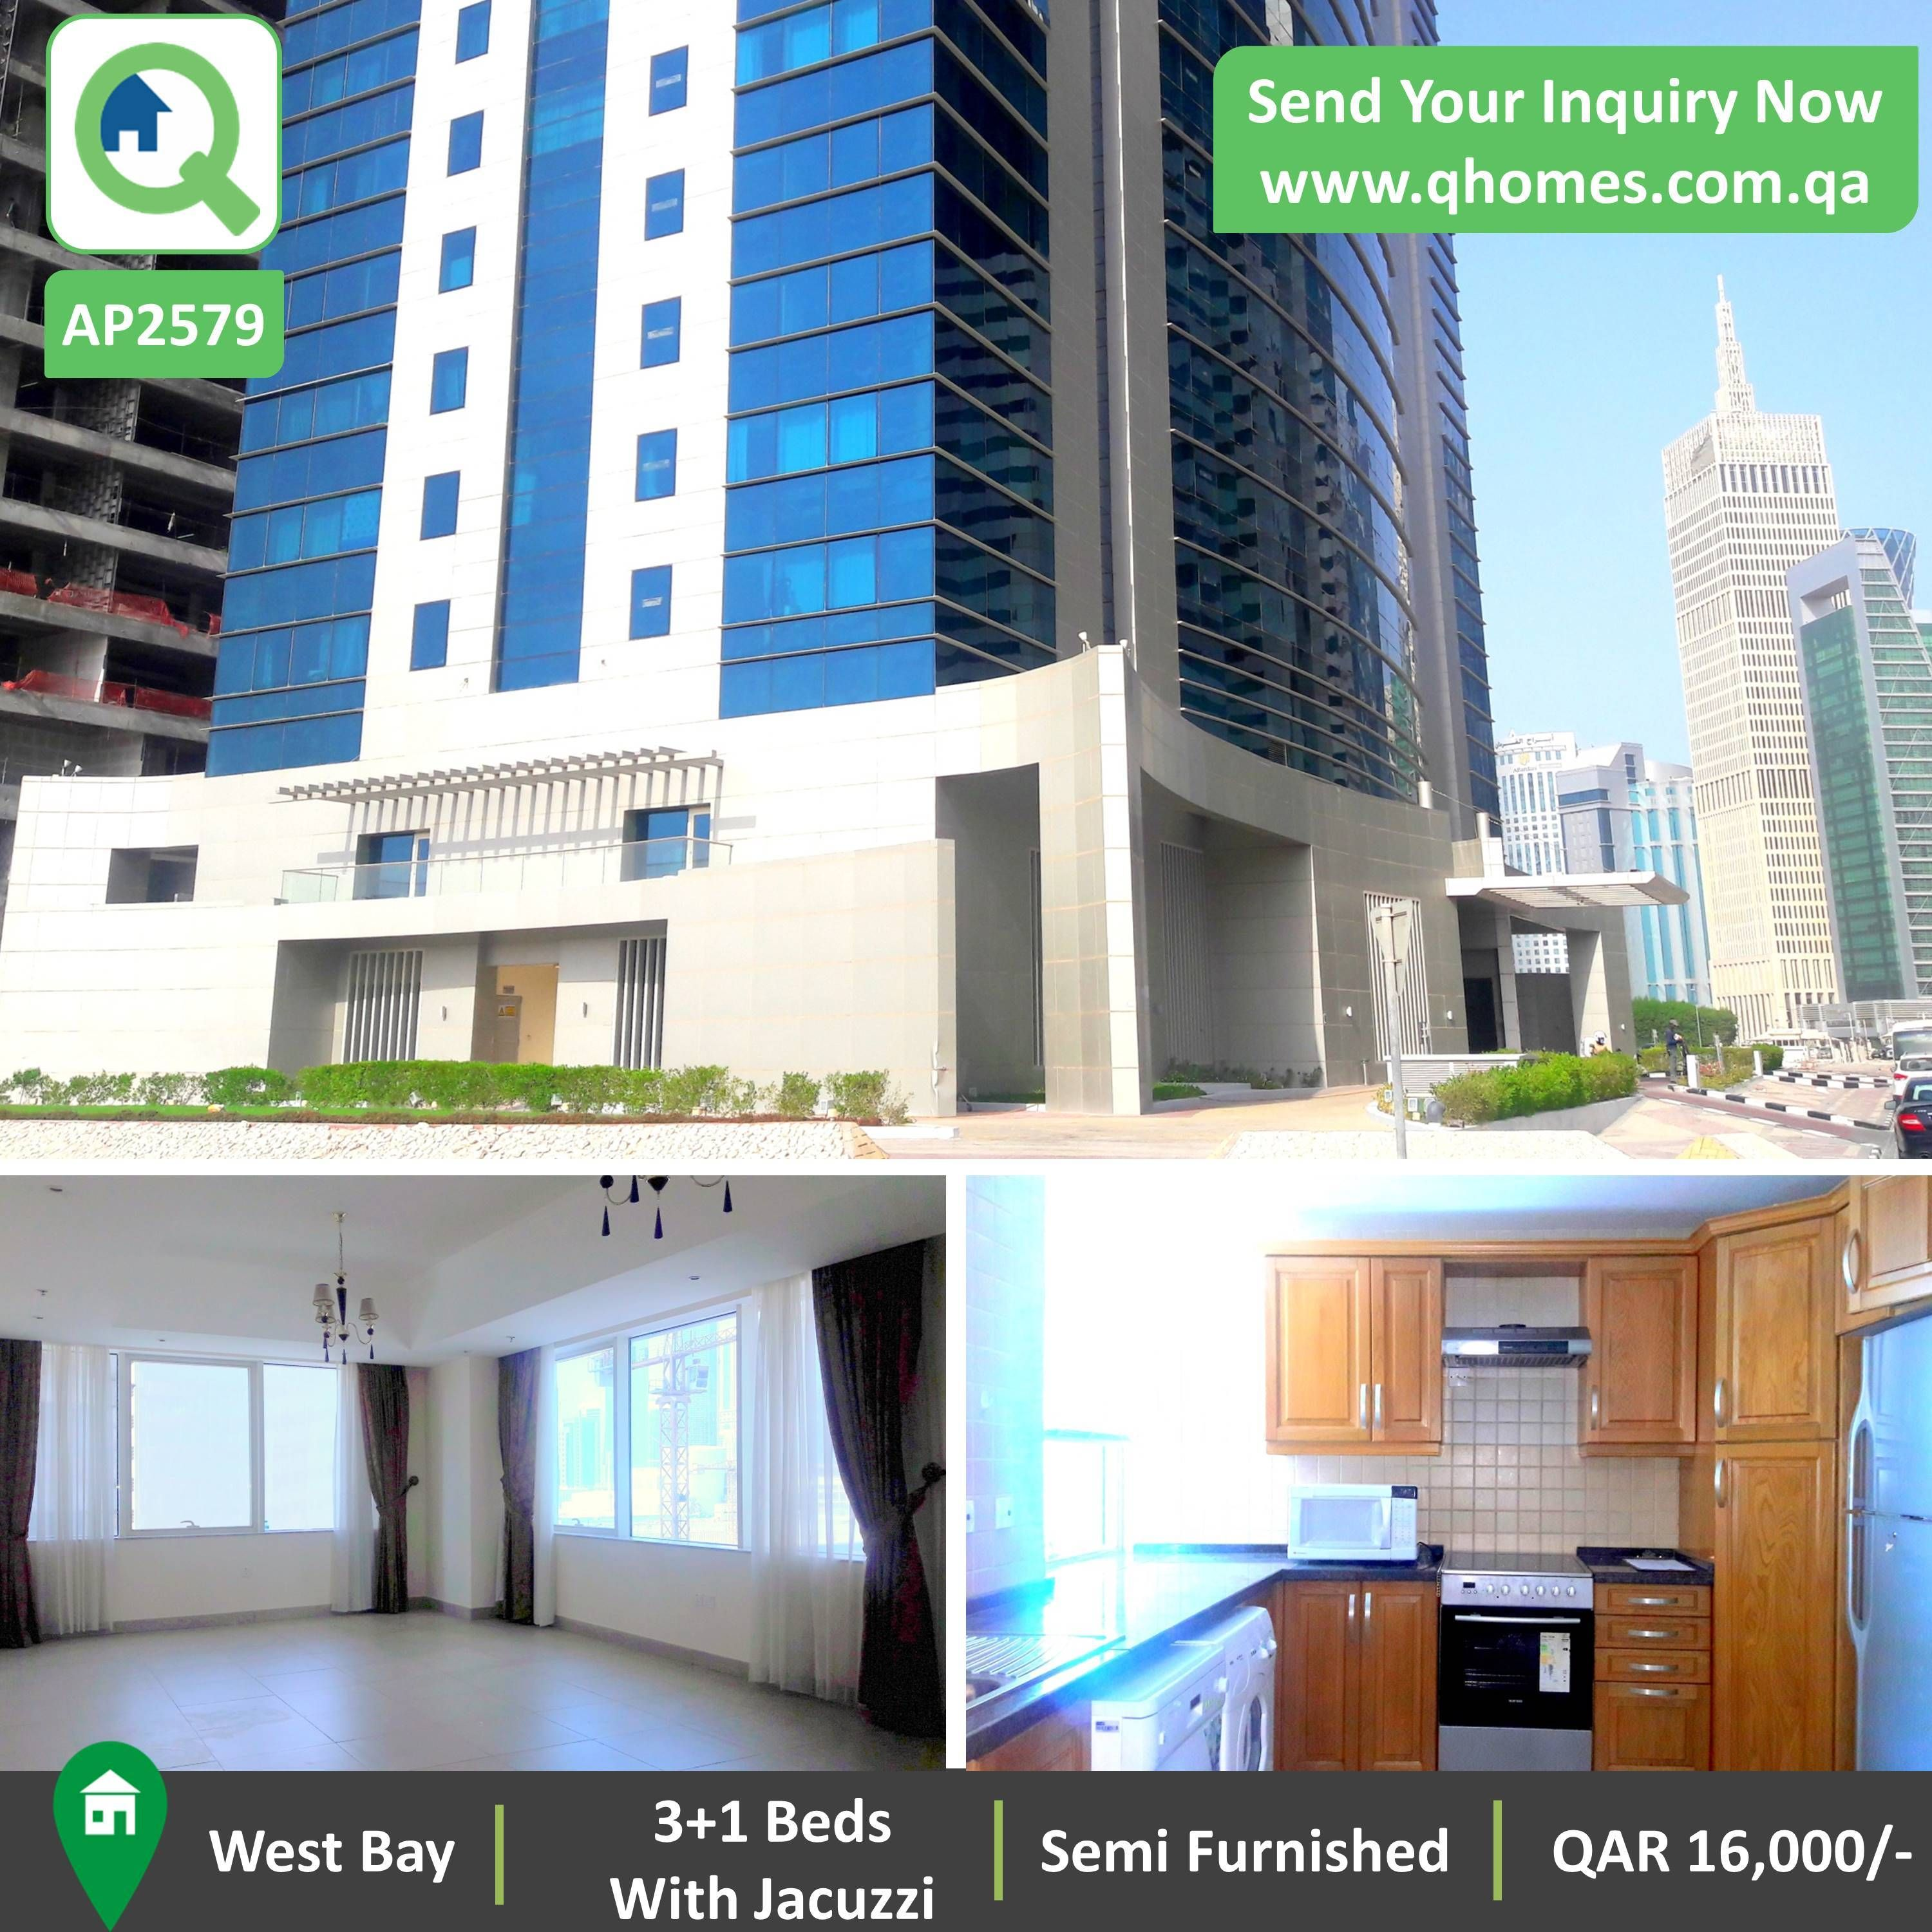 Apartment for Rent in Qatar: Luxurious Semi Furnished 3+1 ...